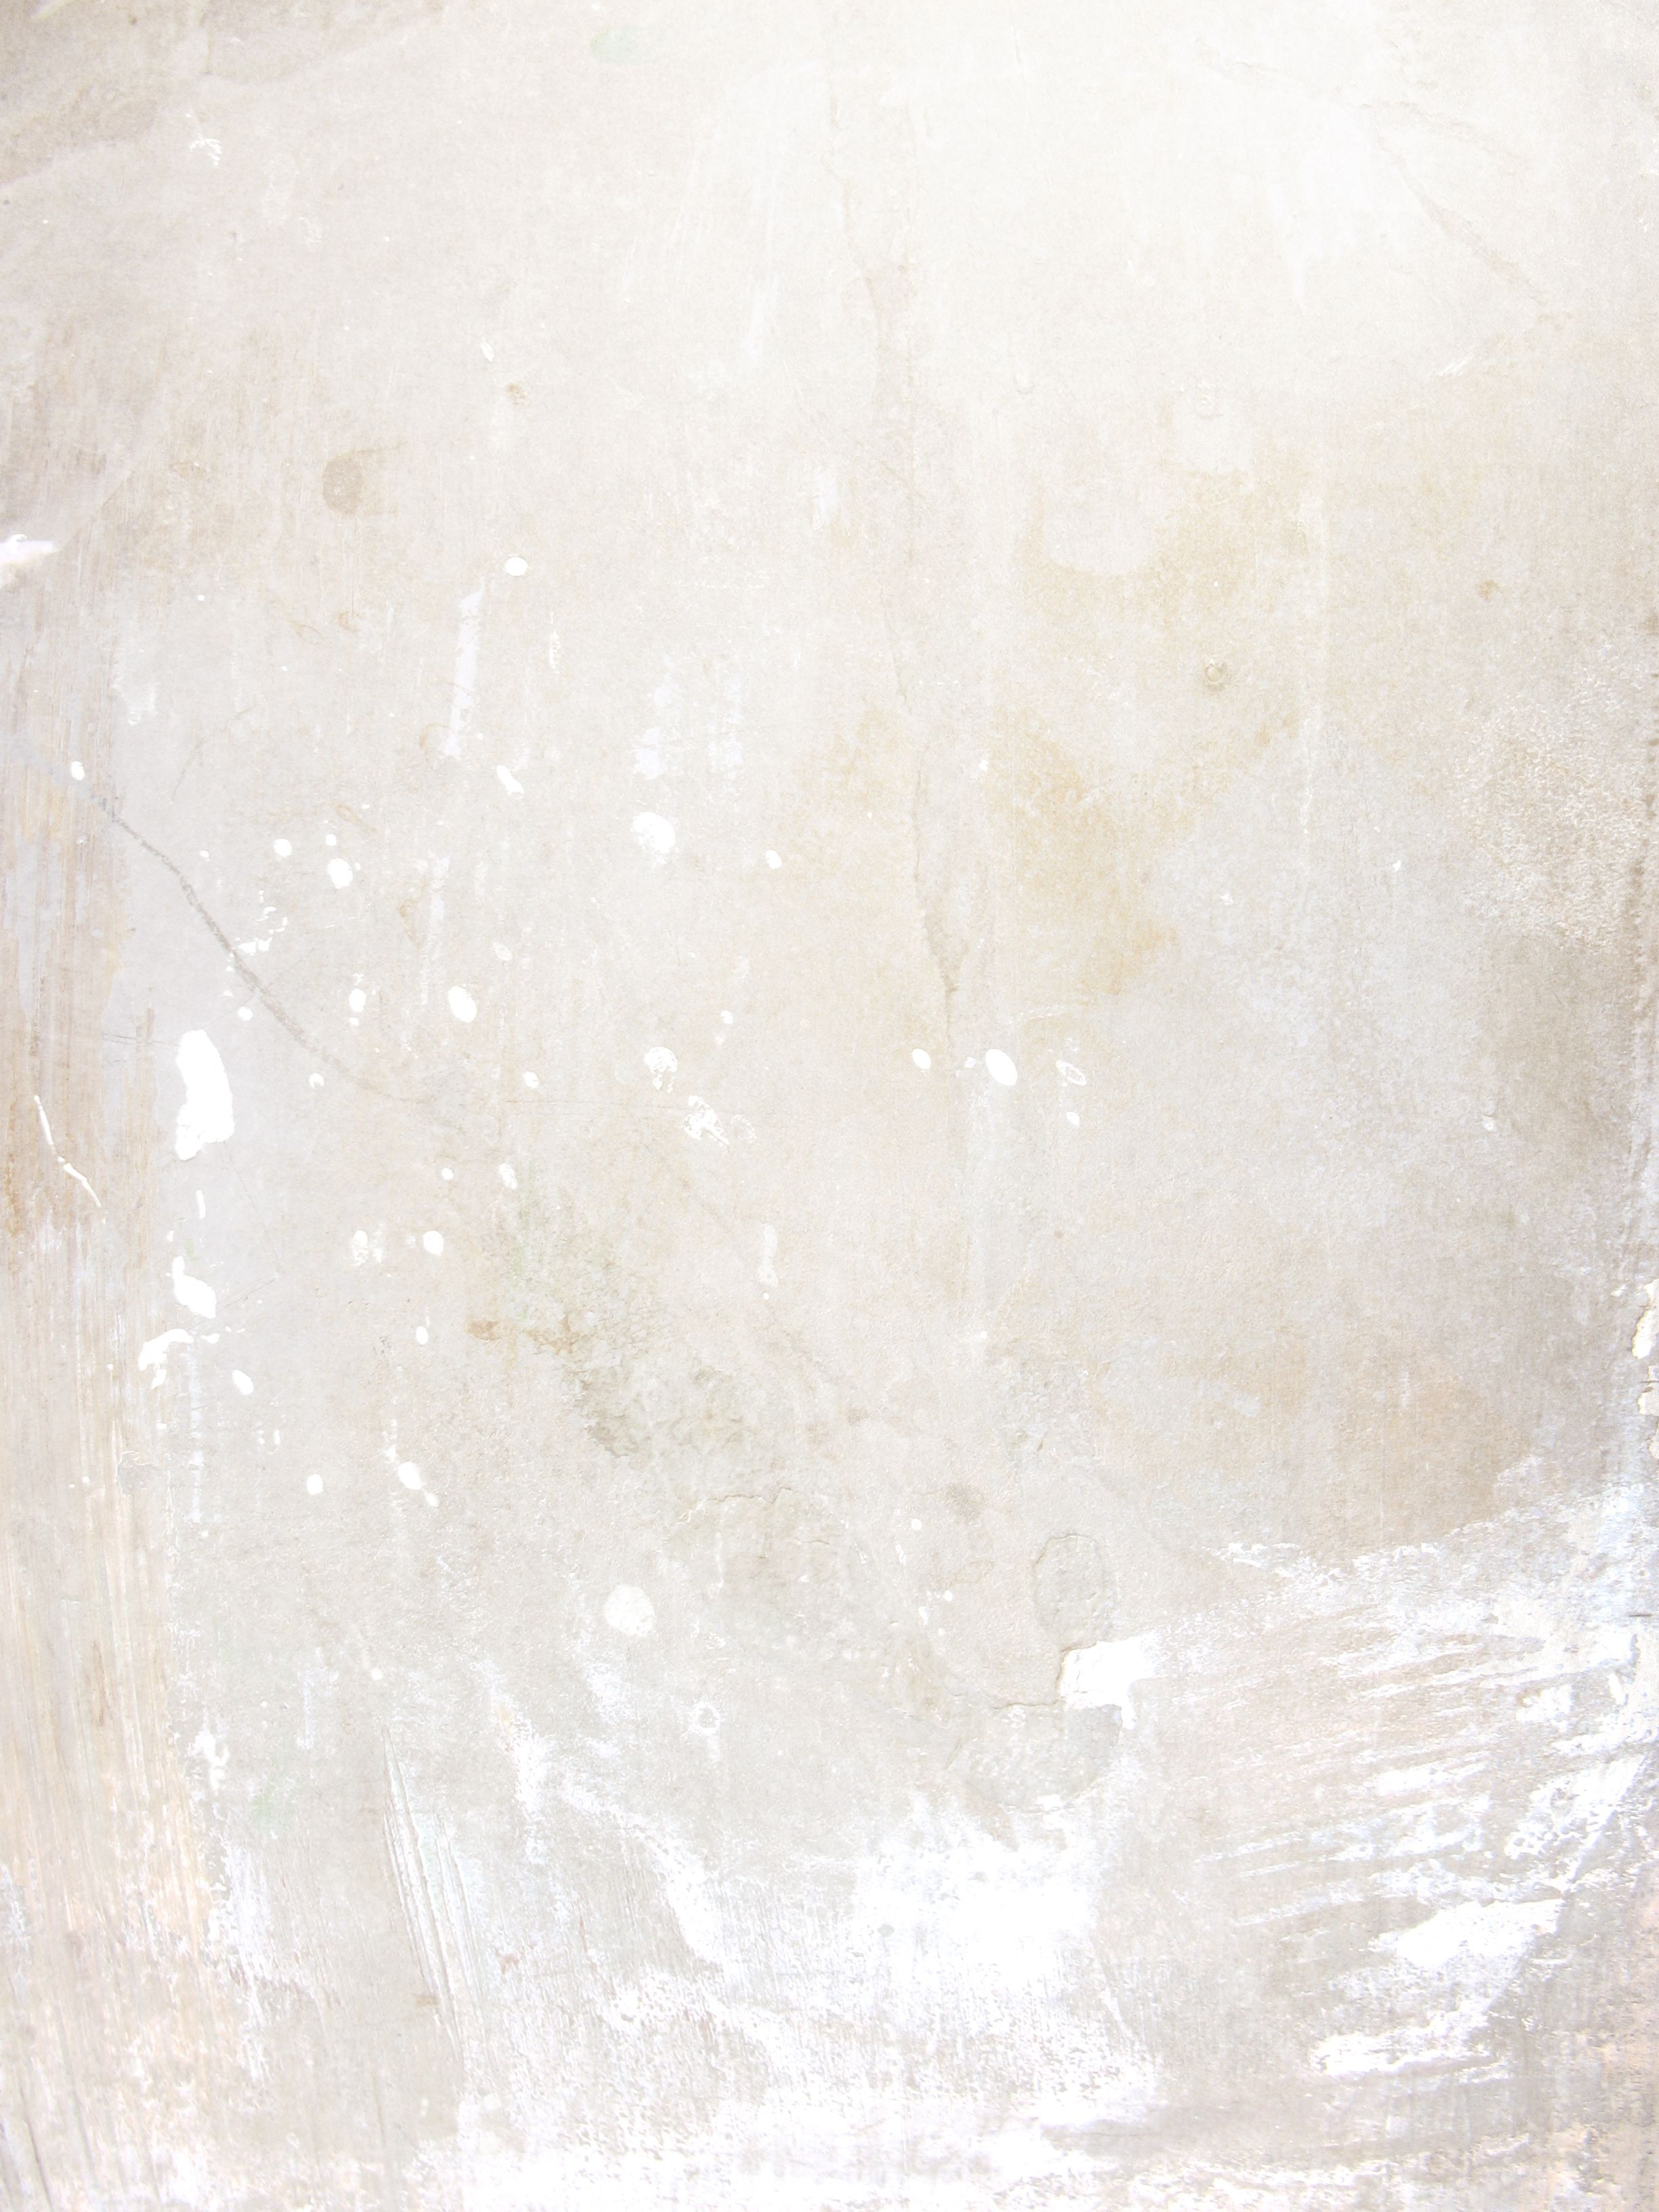 Free subtle light grunge texture texture l t textures for Lightweight stucco